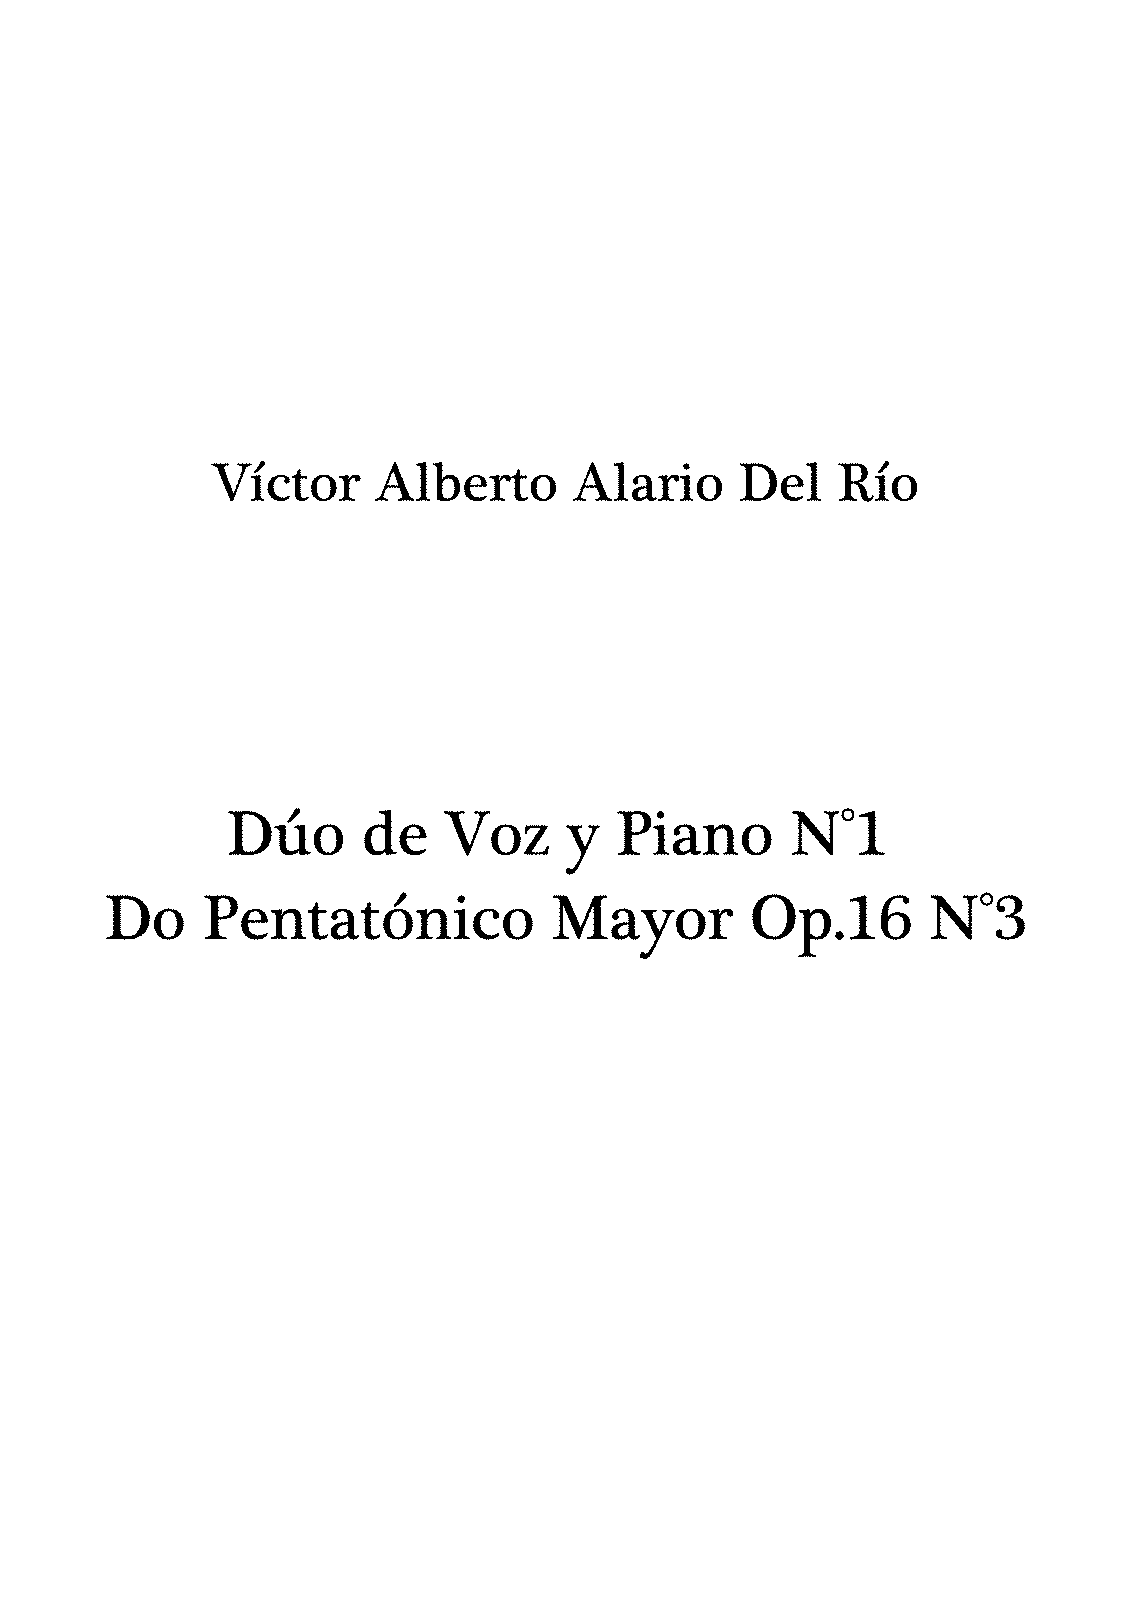 PMLP711428-Dúo de Voz y Piano N°1 Do Pentatónico Mayor Op.16 N°3.pdf